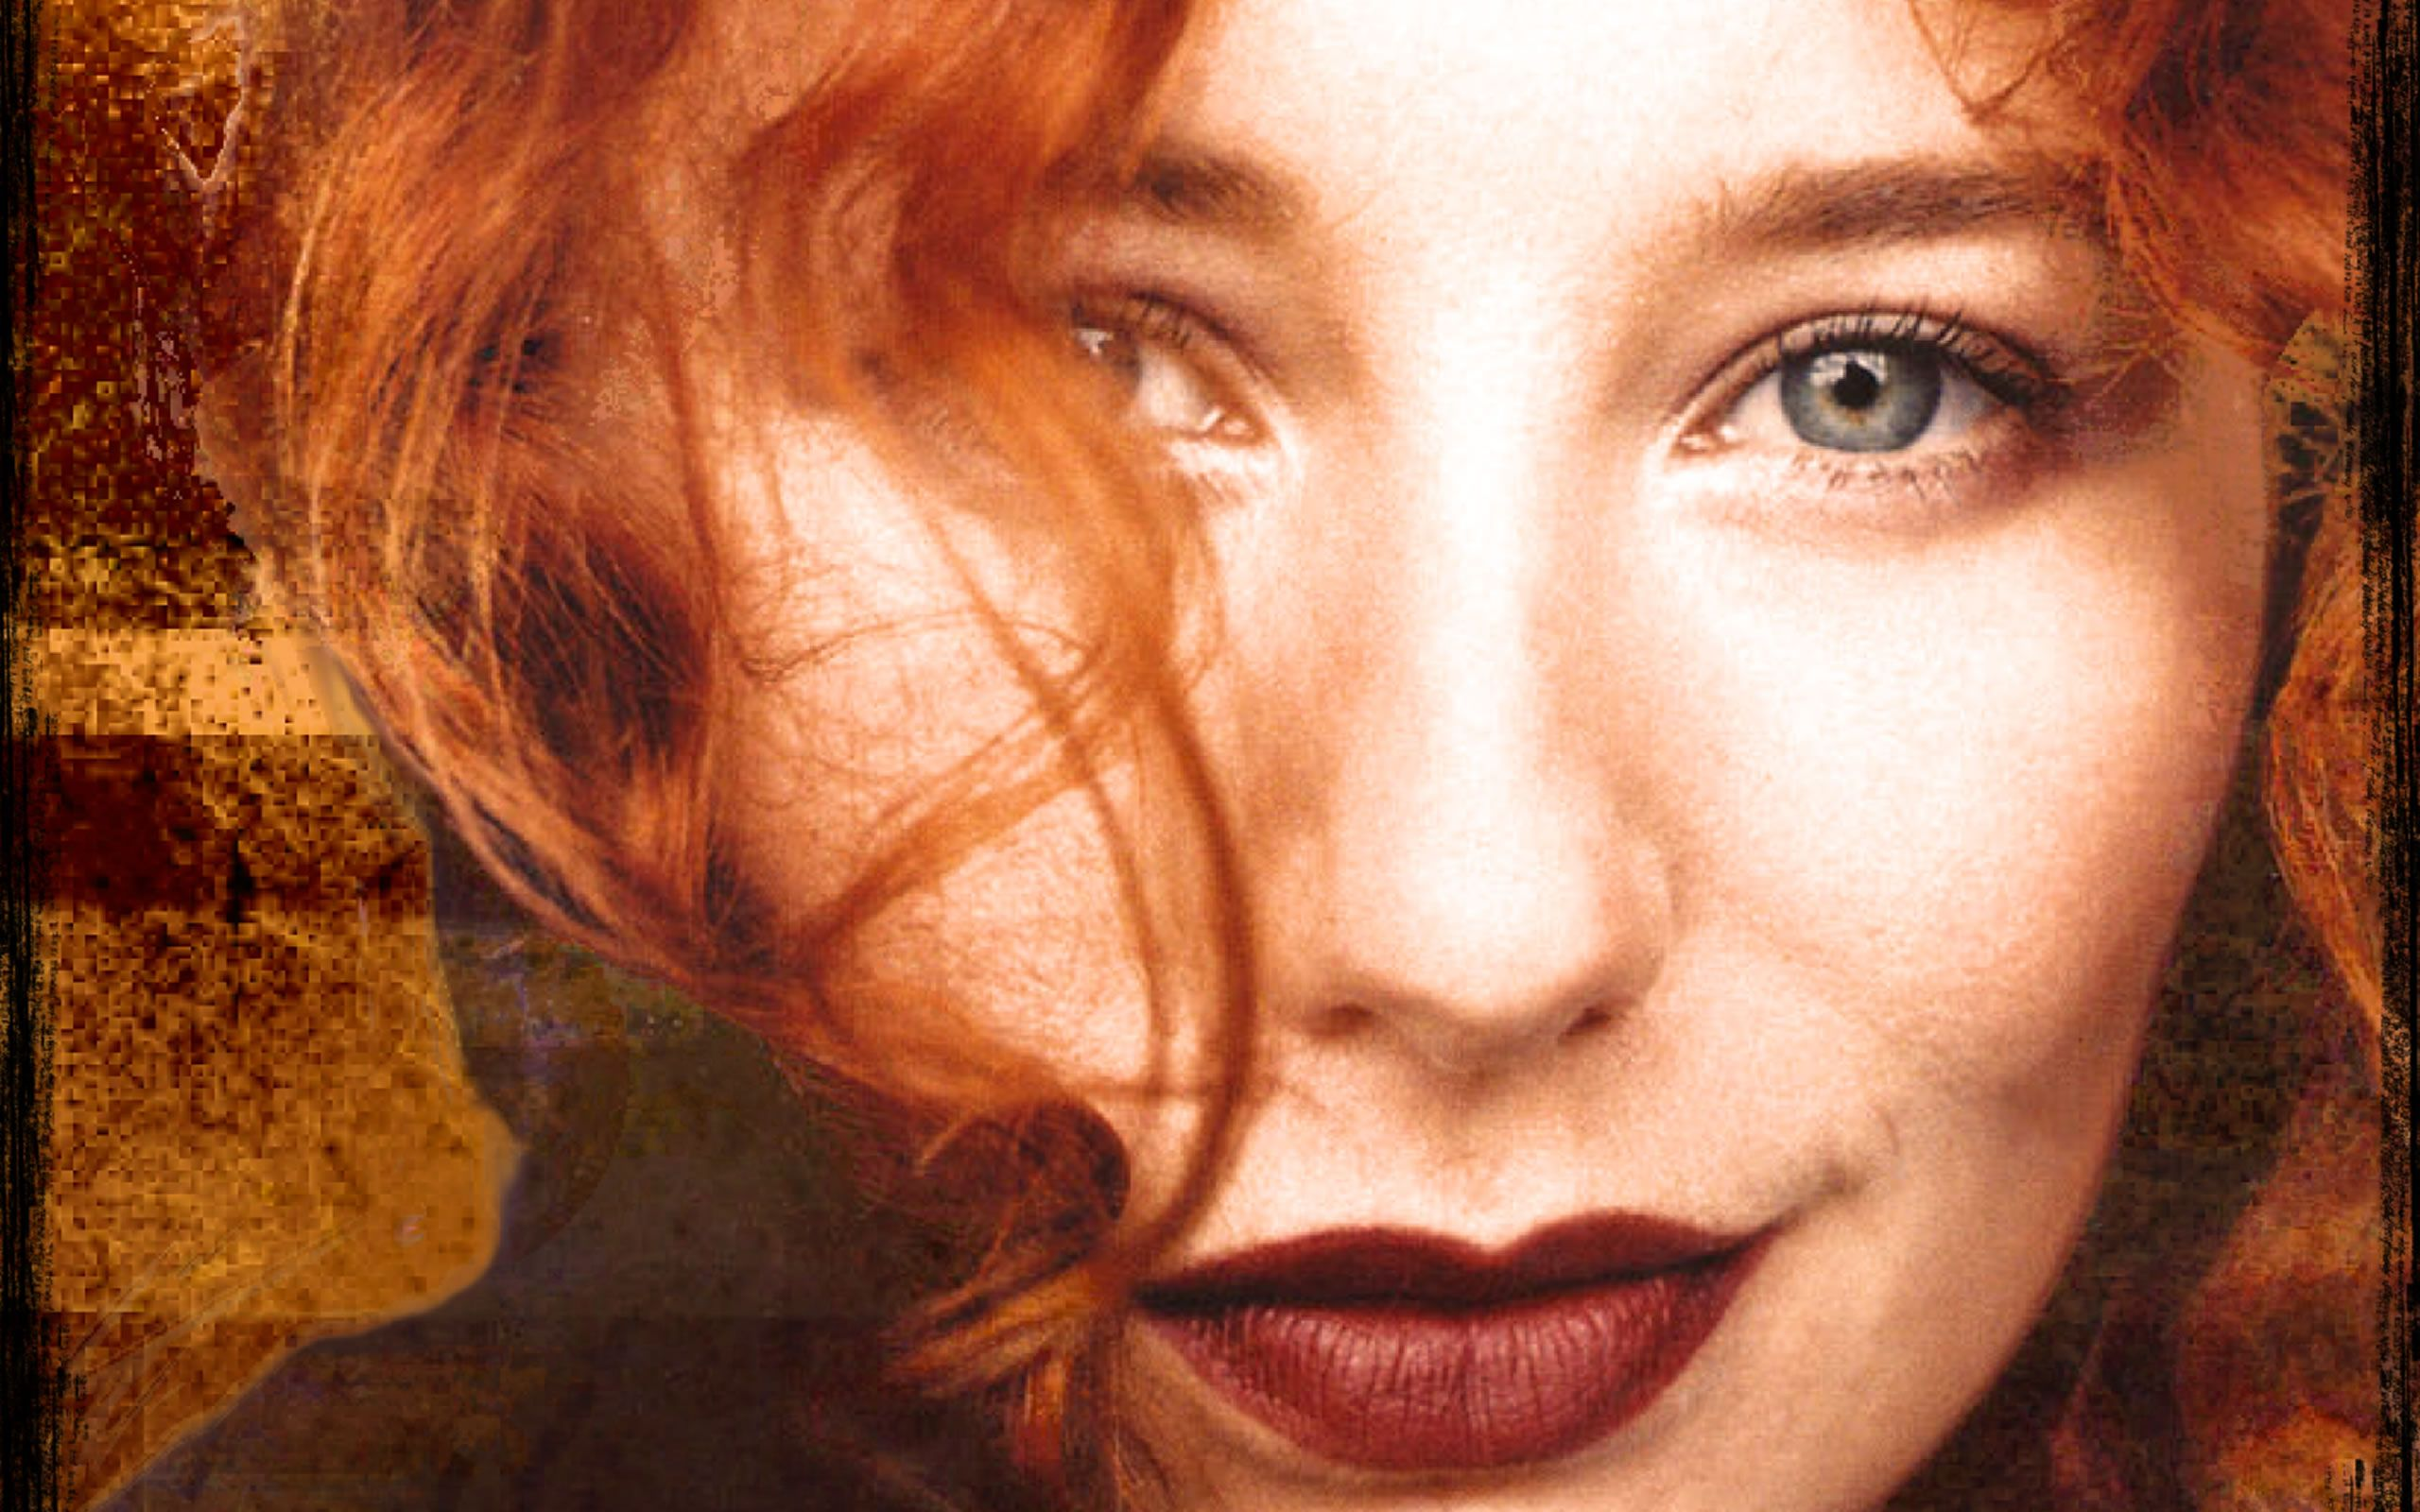 Tori Amos HD Wallpaper | Background Image | 2560x1600 | ID:600815 - Wallpaper Abyss